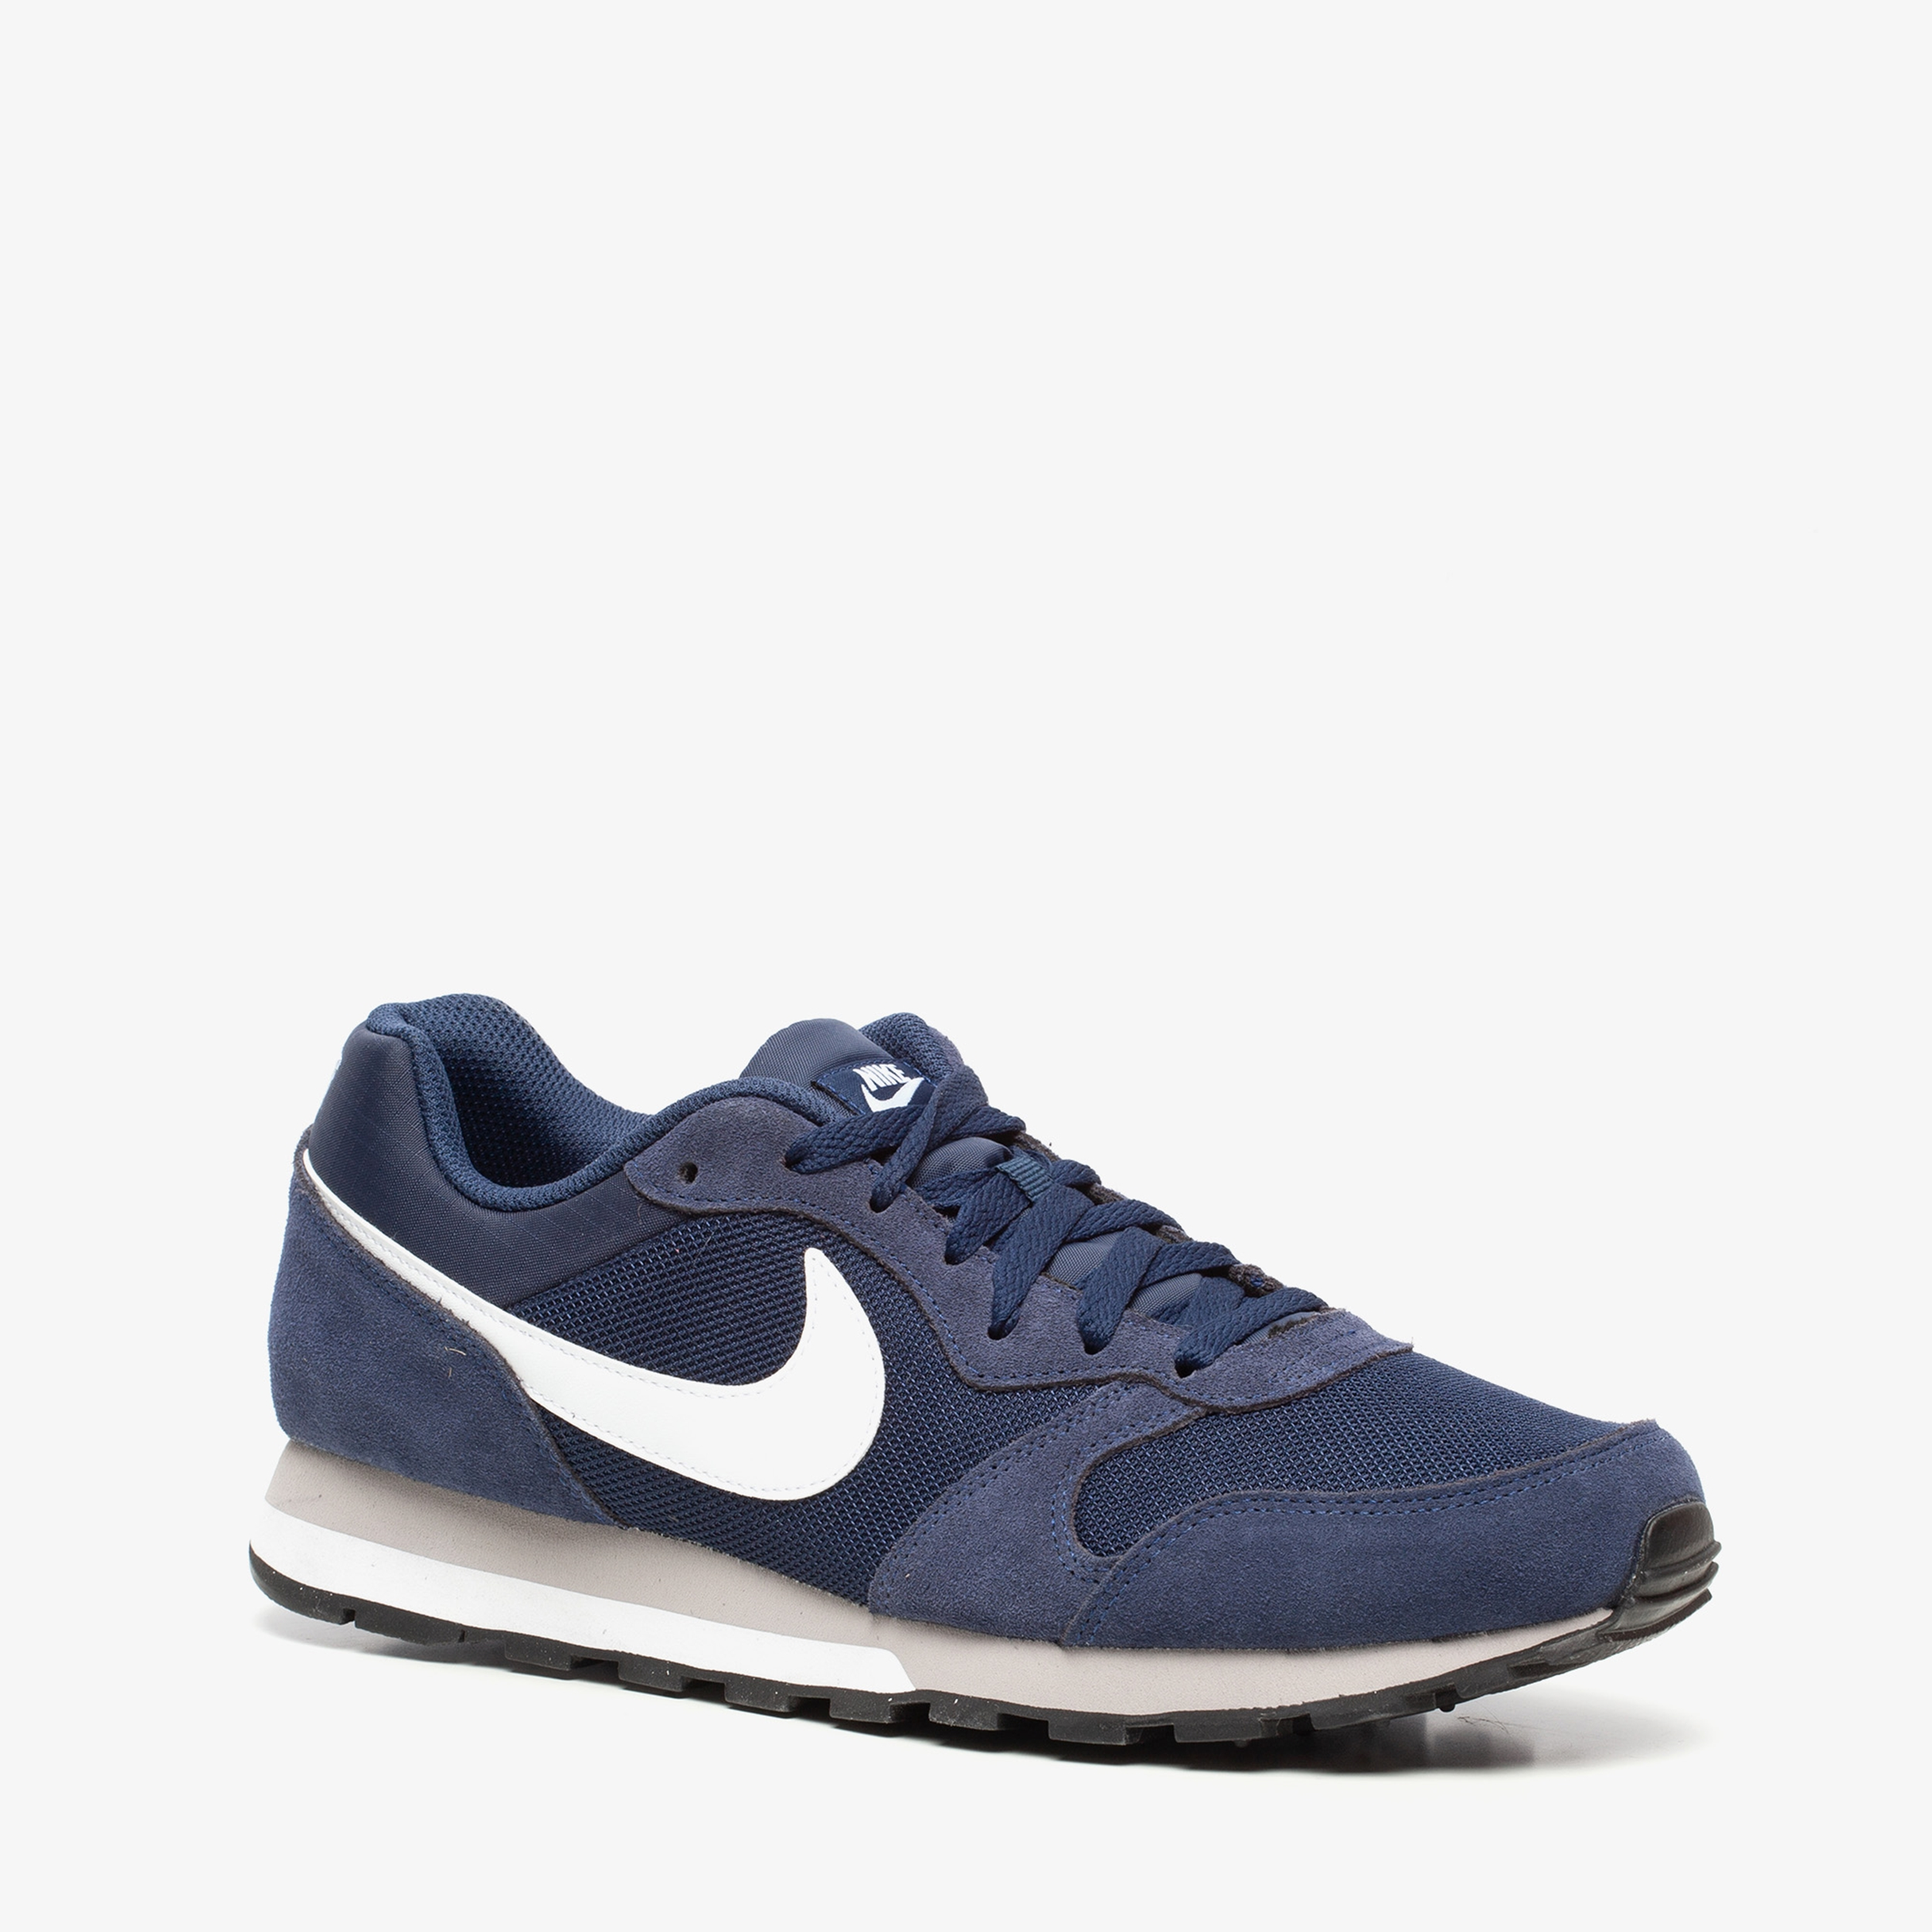 Nike MD Runner 2 heren sneakers | Scapino.nl